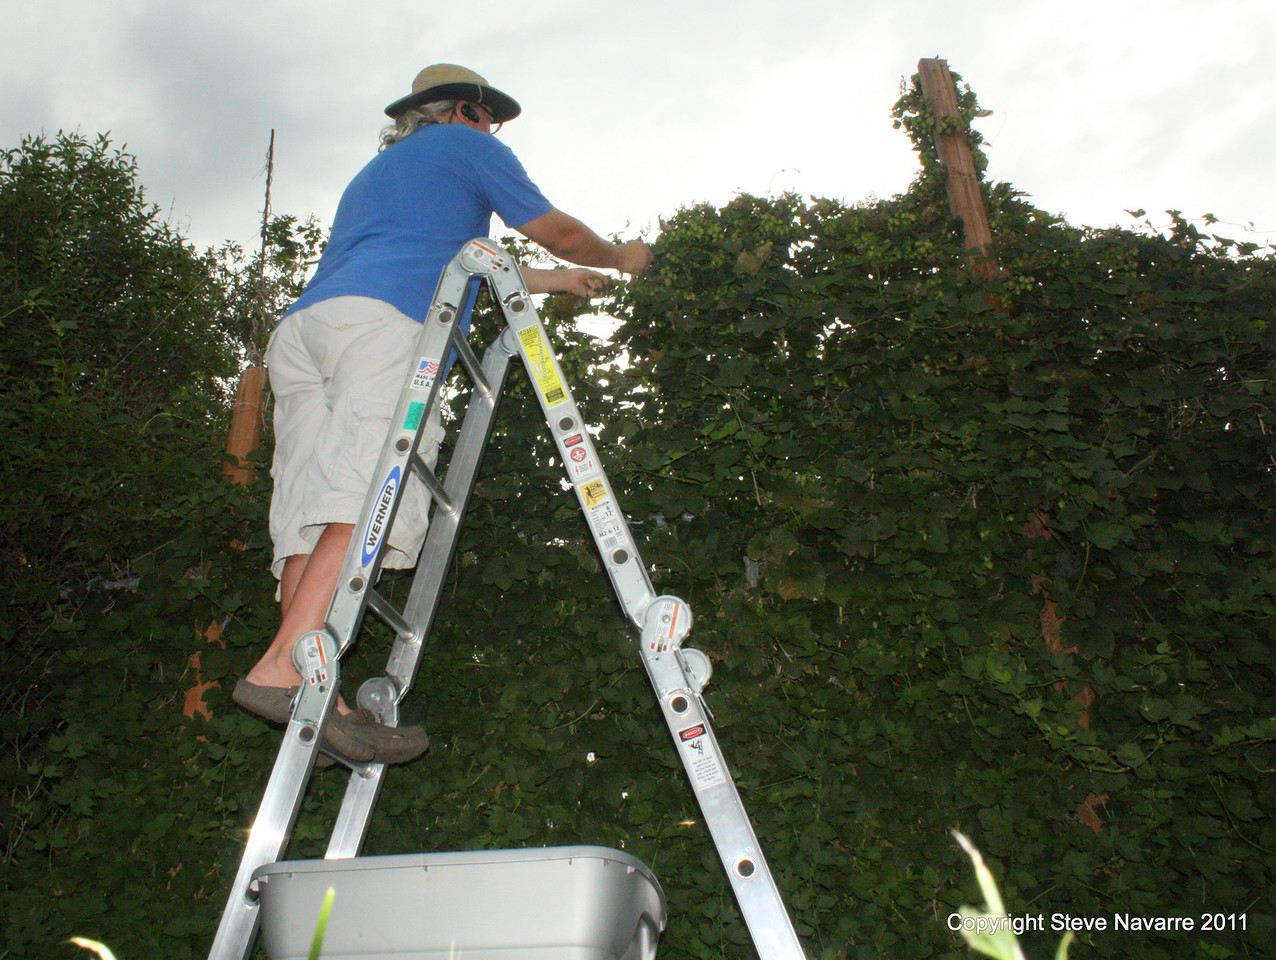 Yours truly in the 7' ladder picking plucking ans snipping.